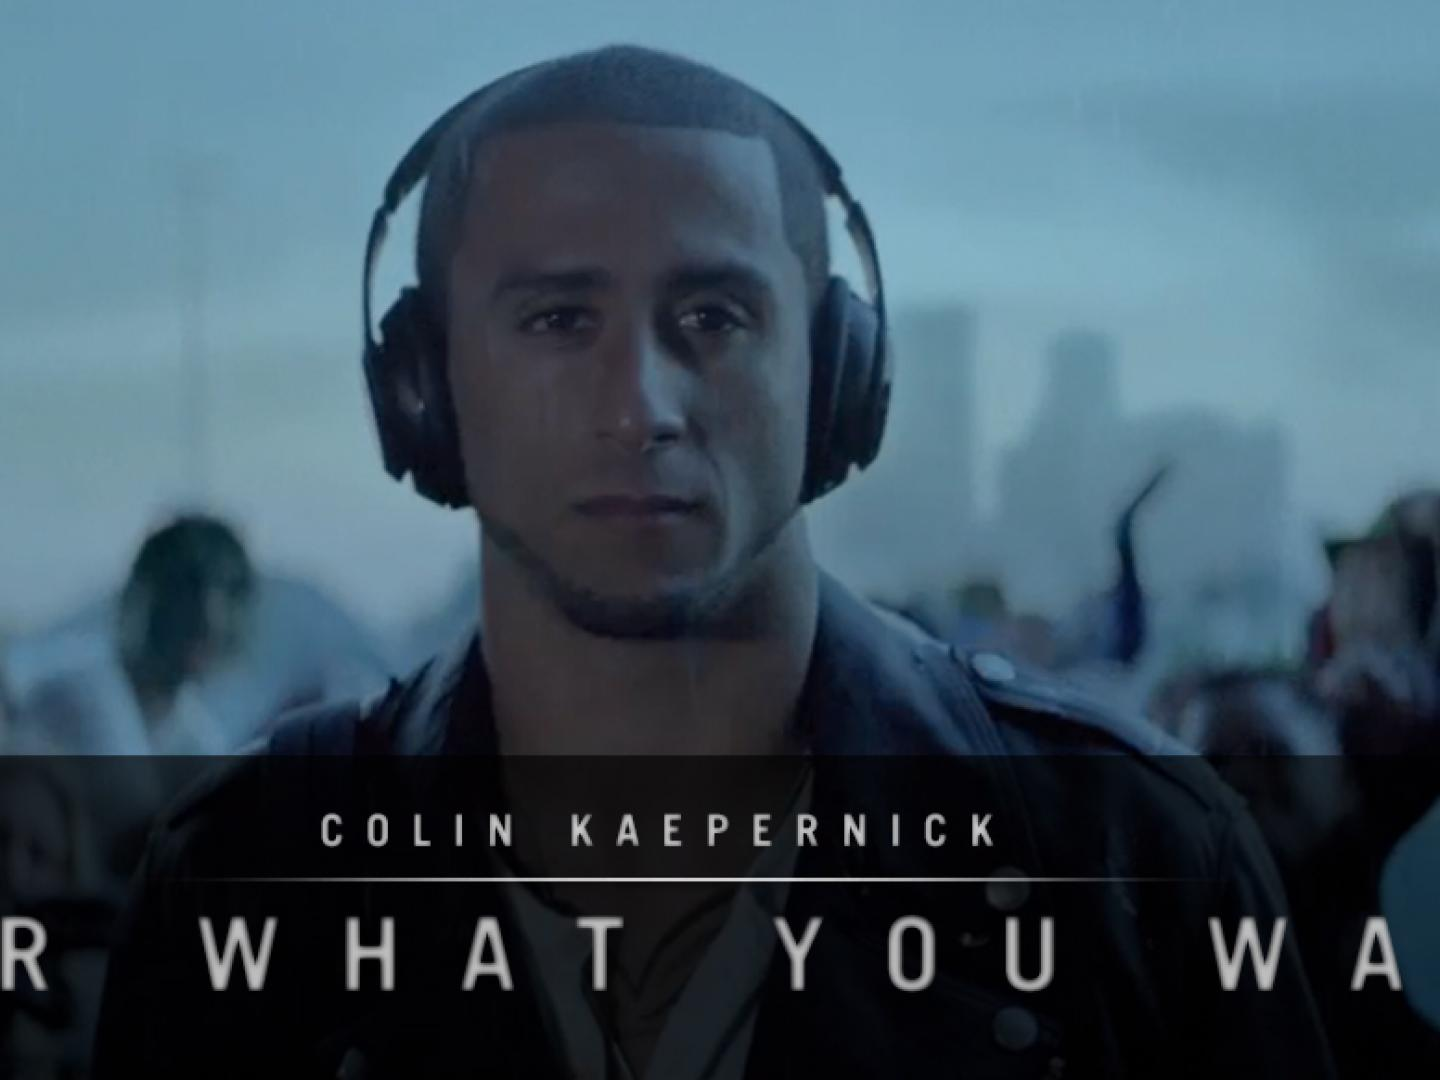 Image for Beats by Dr. Dre - Hear What You Want - Colin Kaepernick